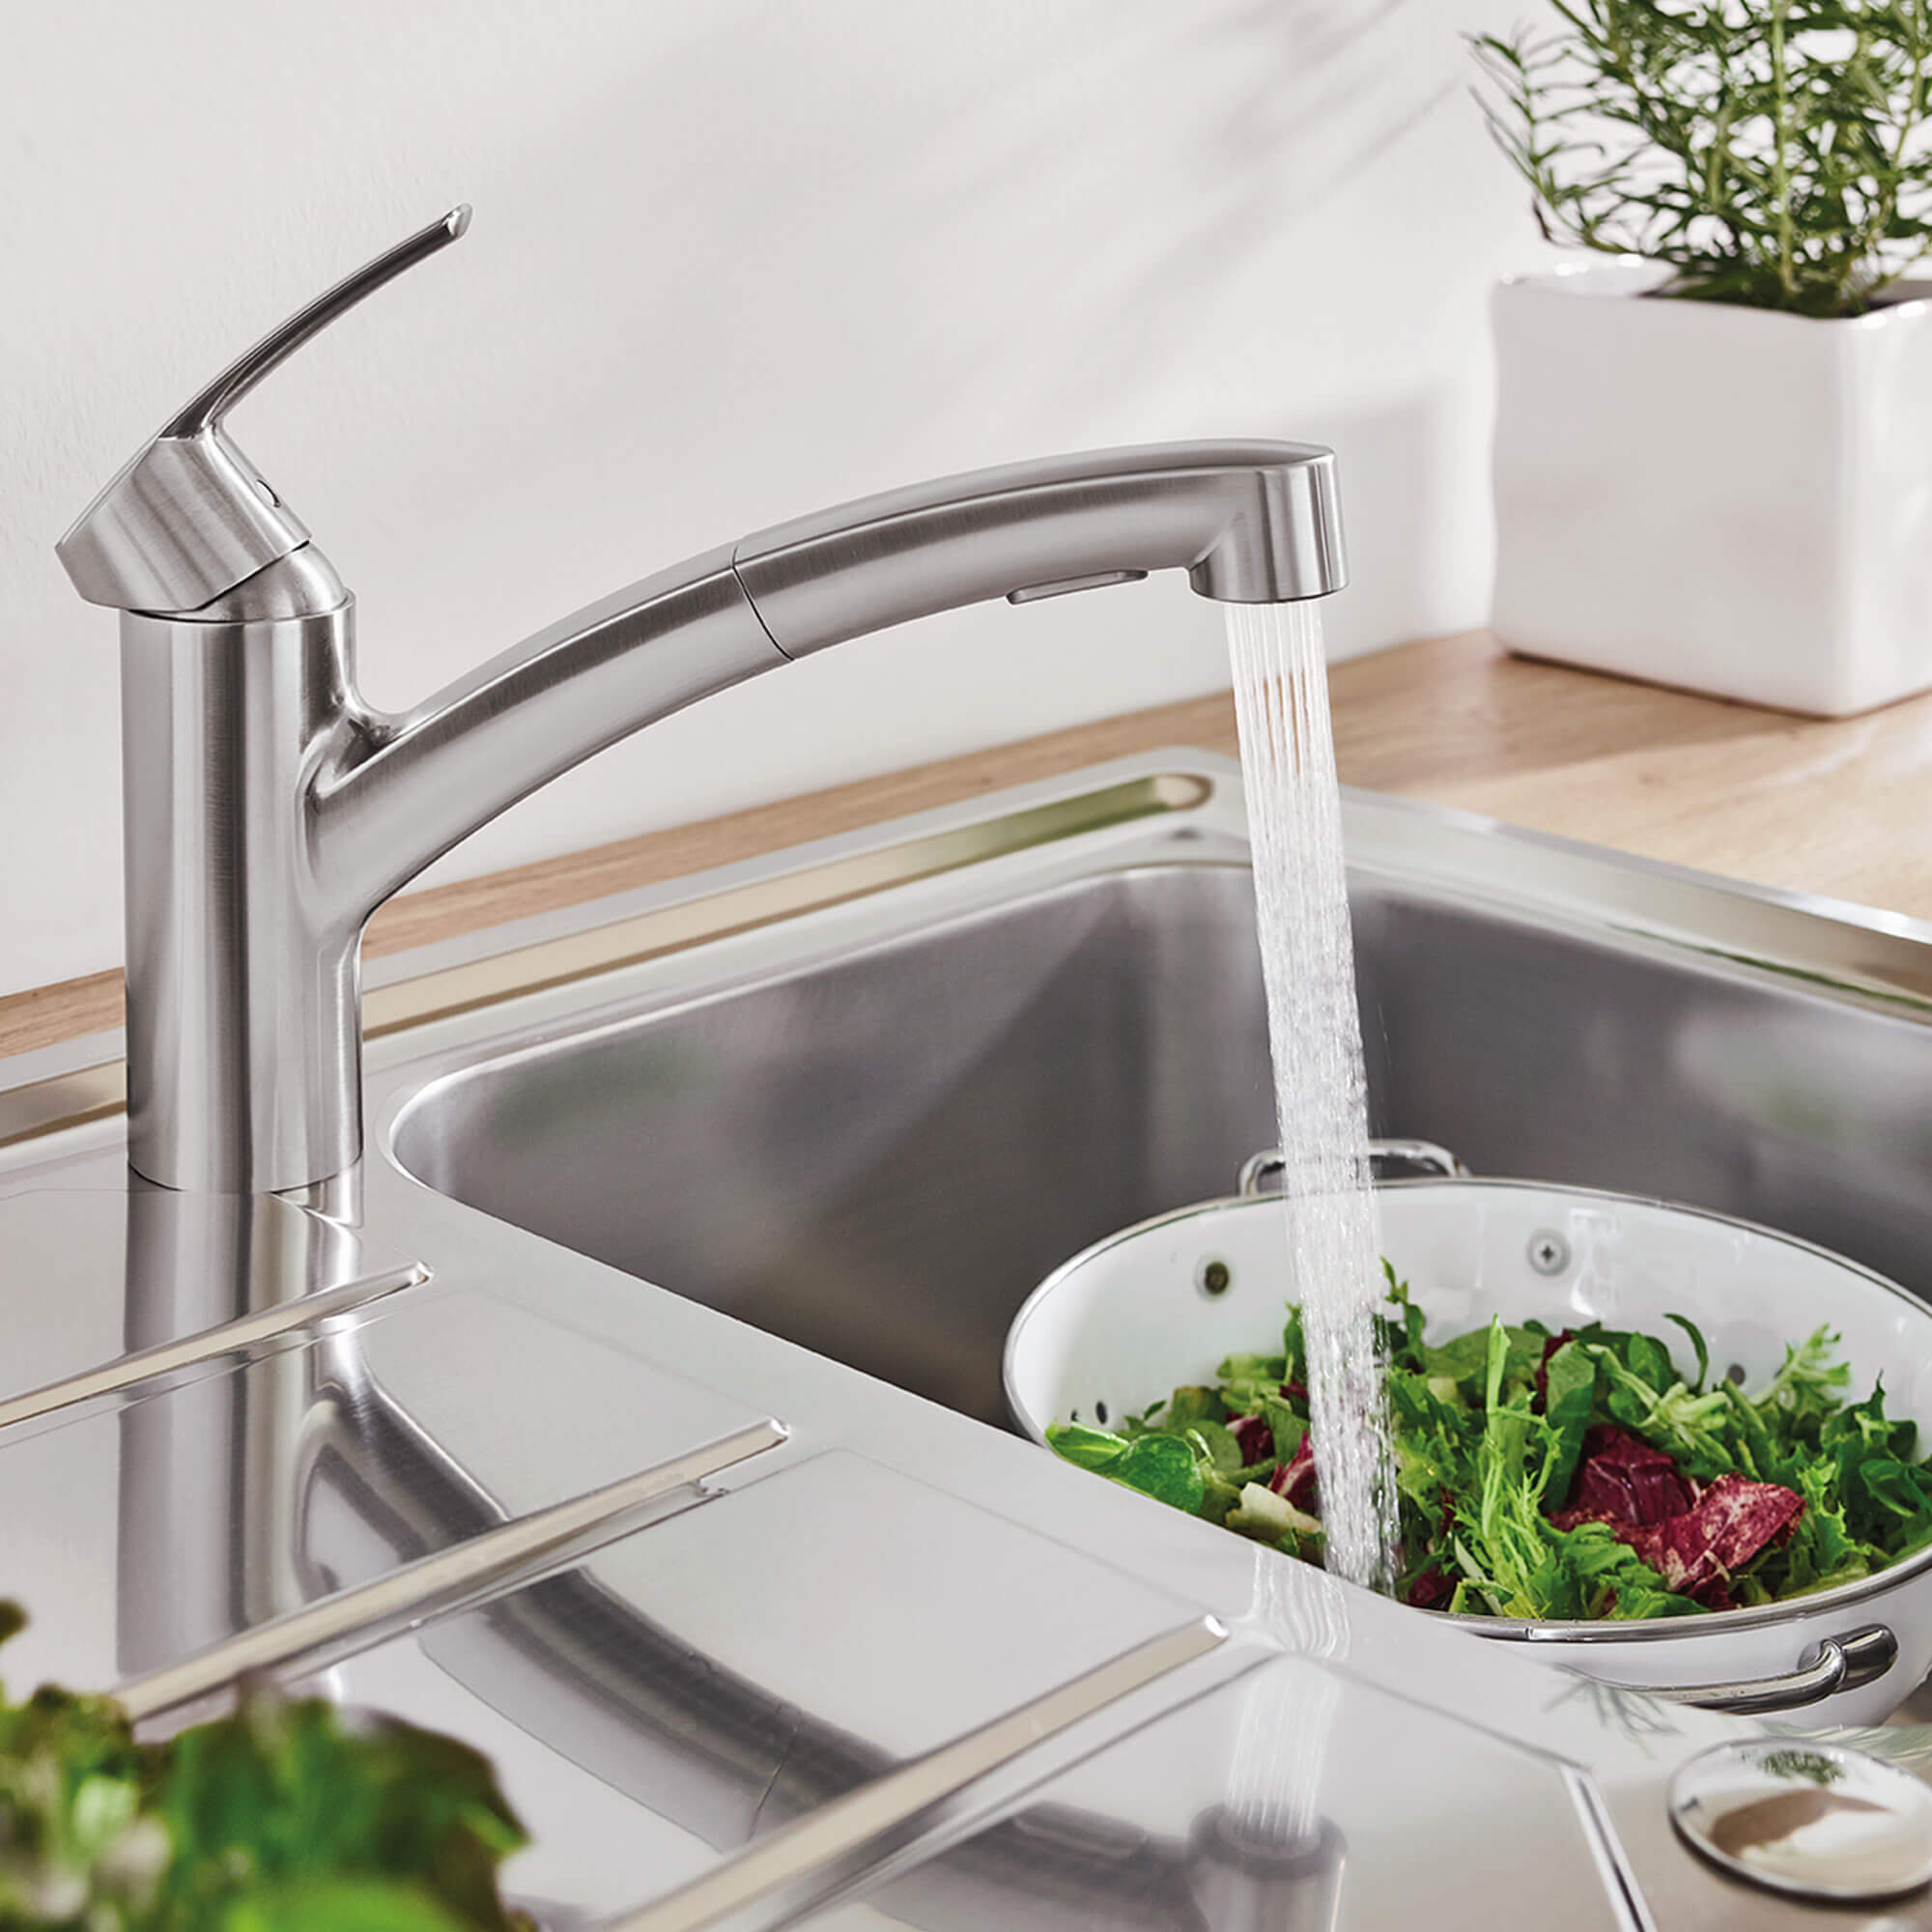 Eurosmart kitchen faucet spraying water on a bowl of lettuce.